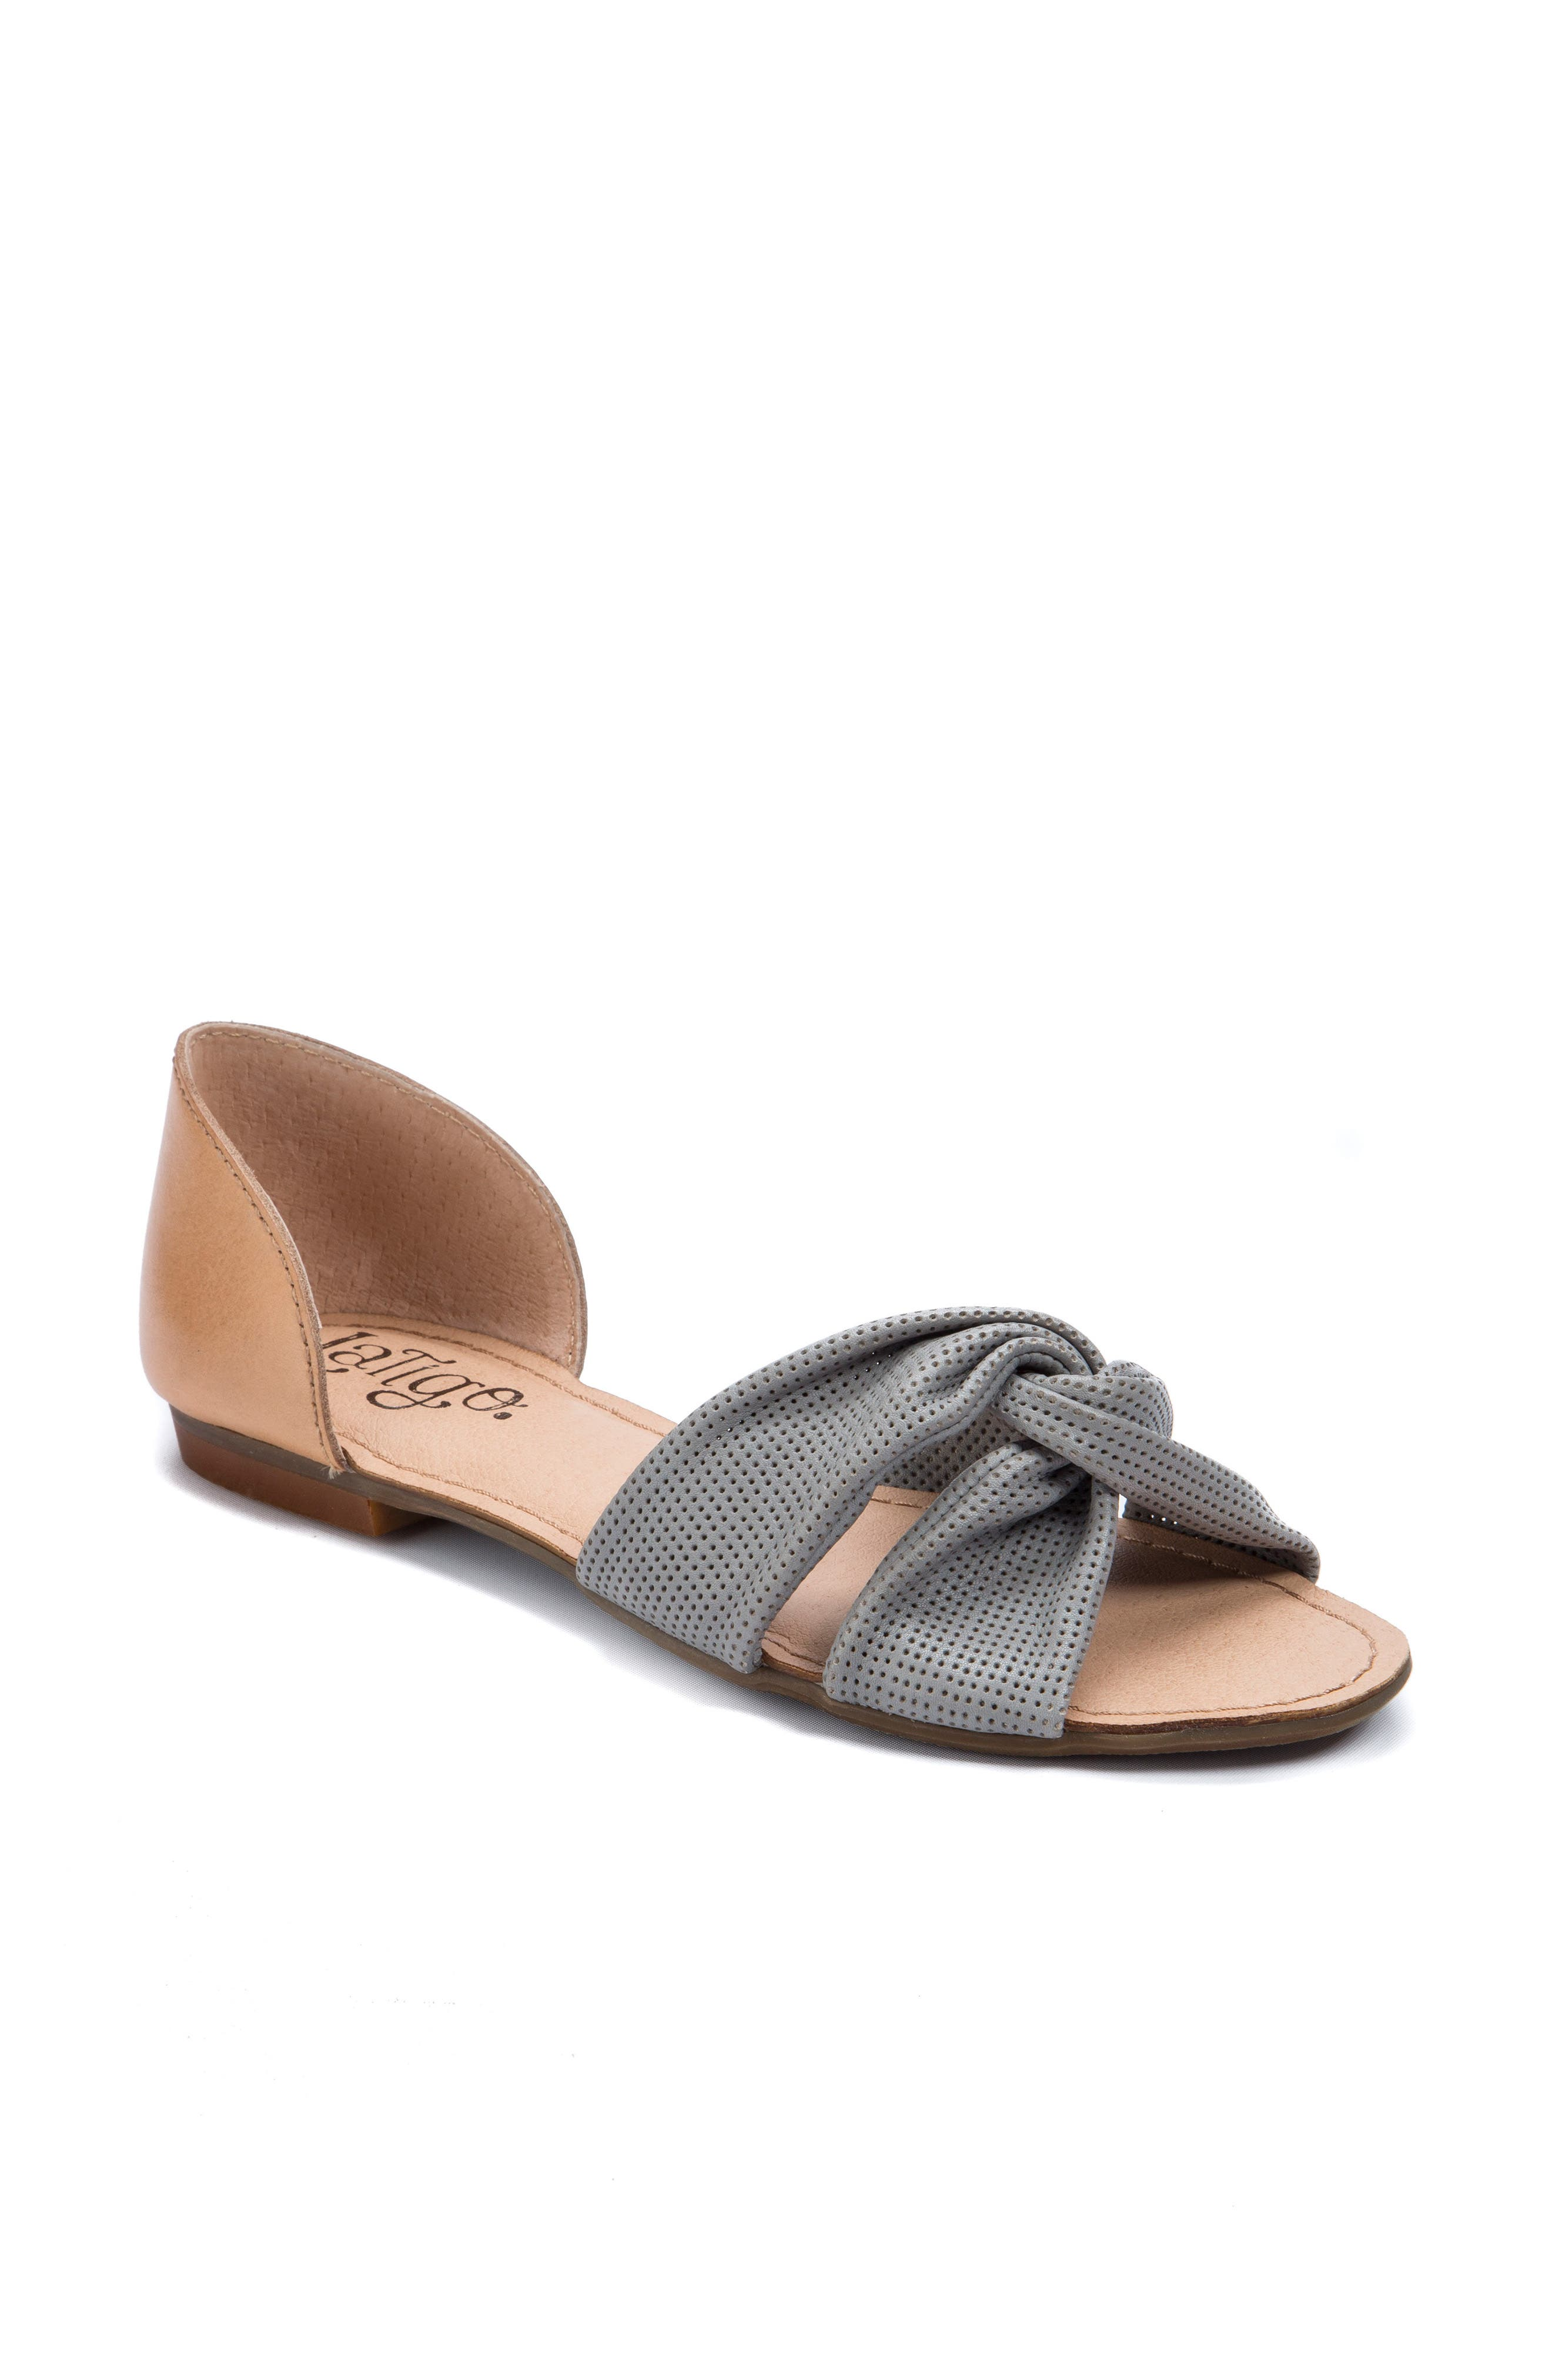 Darcy Perforated Flat Sandal,                         Main,                         color, Mist Grey Leather